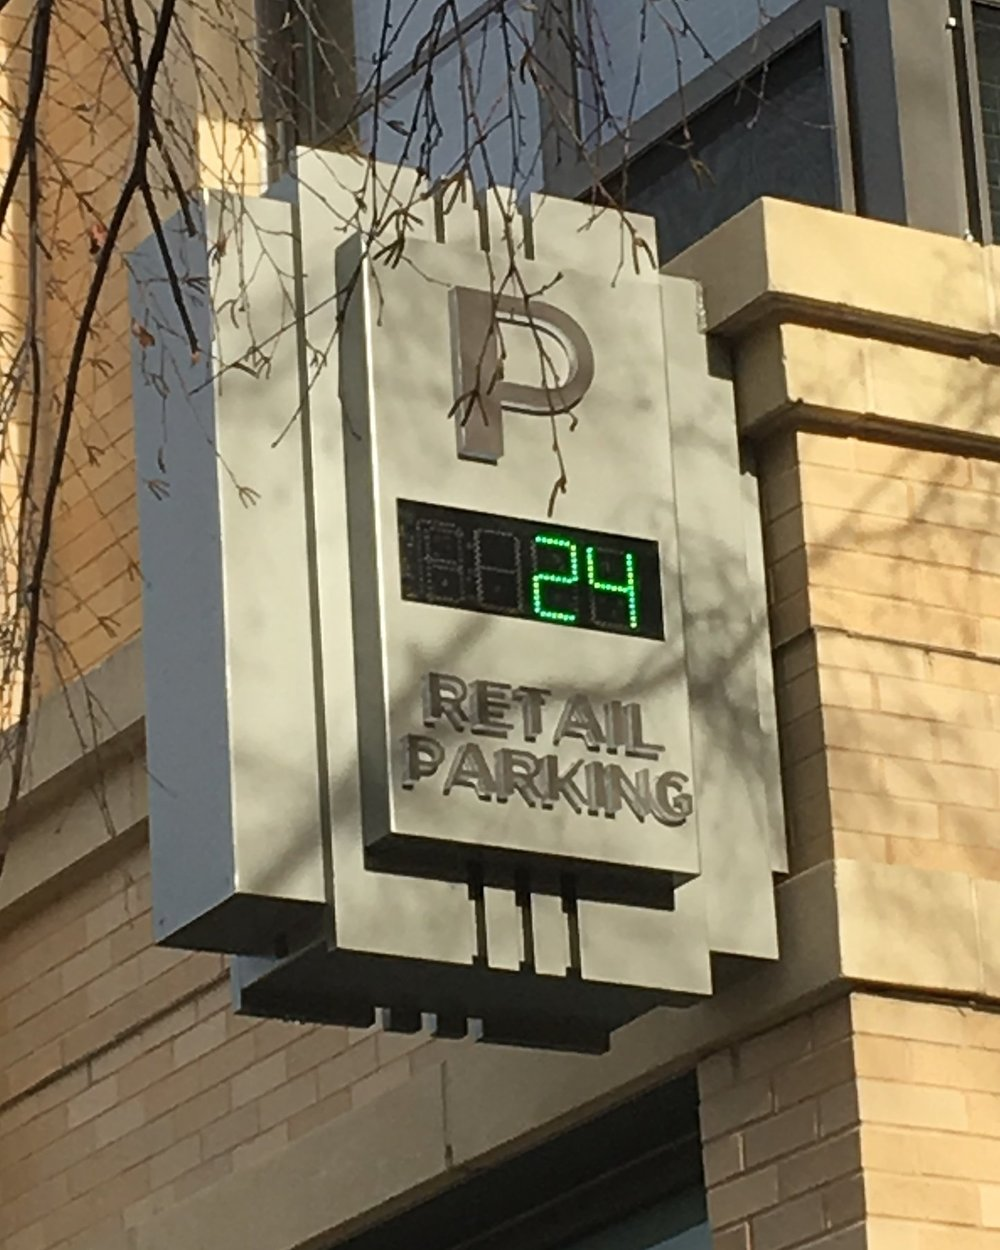 If you're driving to us, look for this parking garage sign!